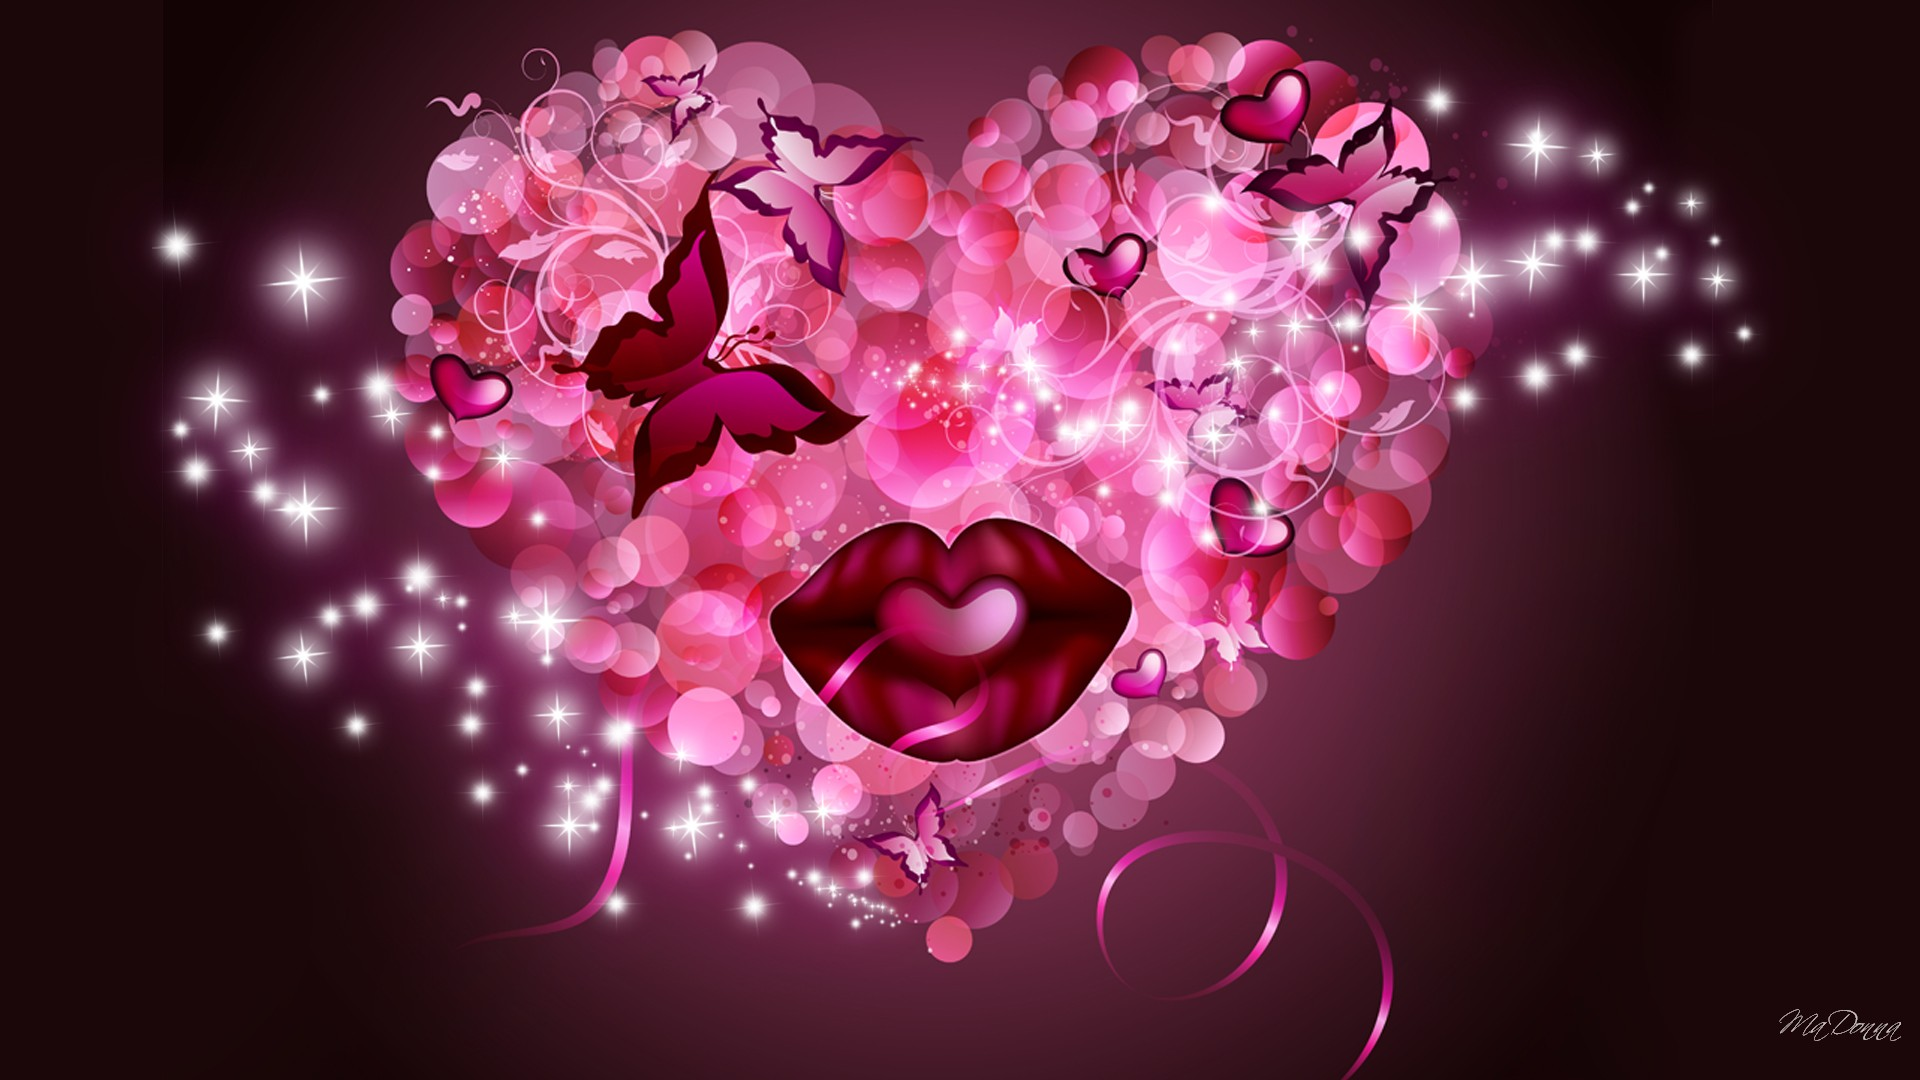 Heart Wallpapers High Quality